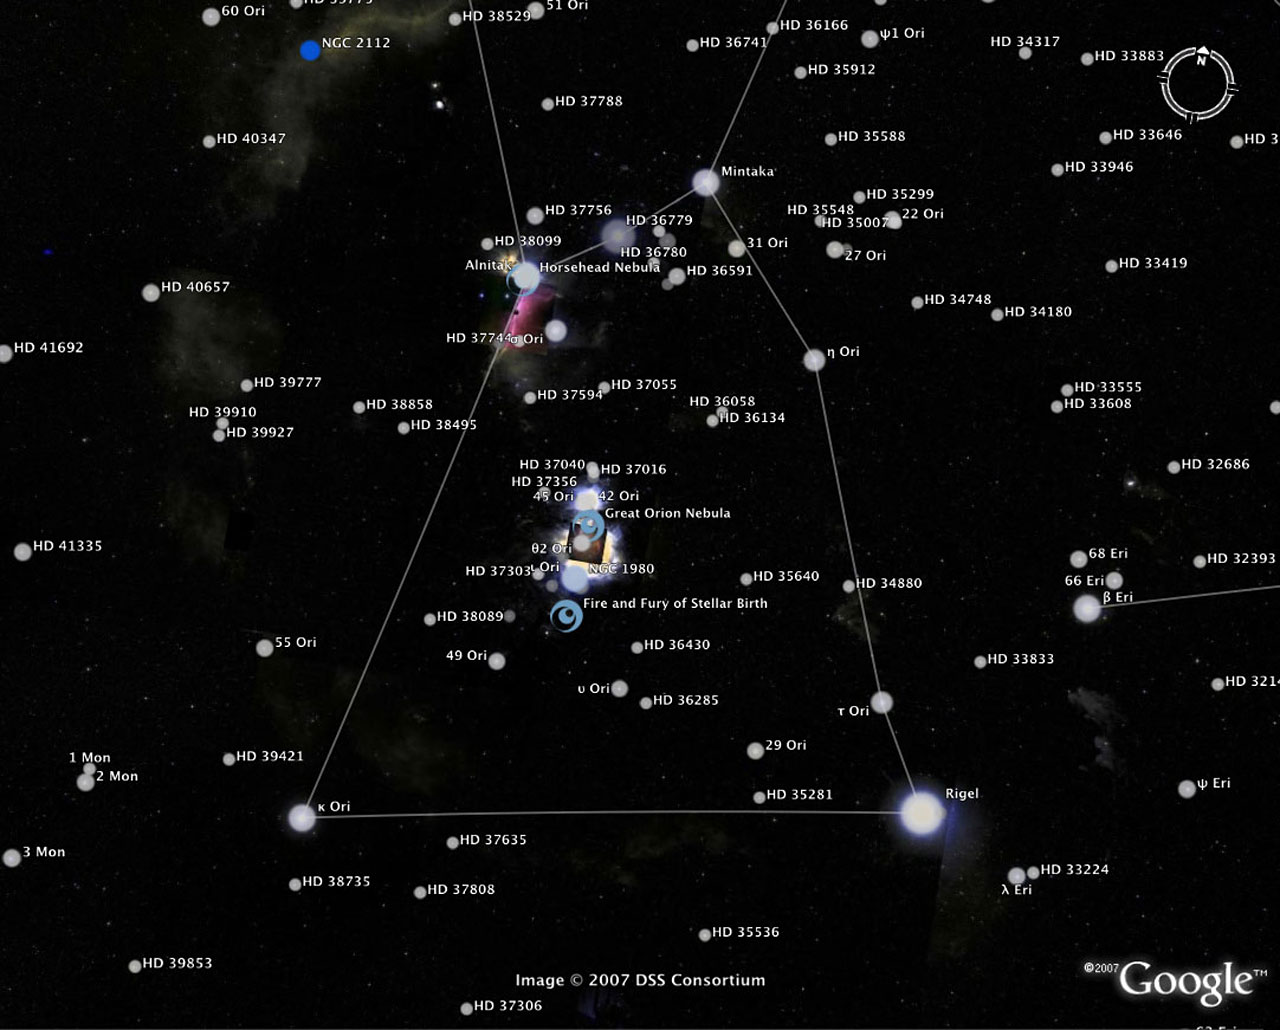 Make Your Own 3d Name Wallpaper The Sky In Google Earth Esa Hubble